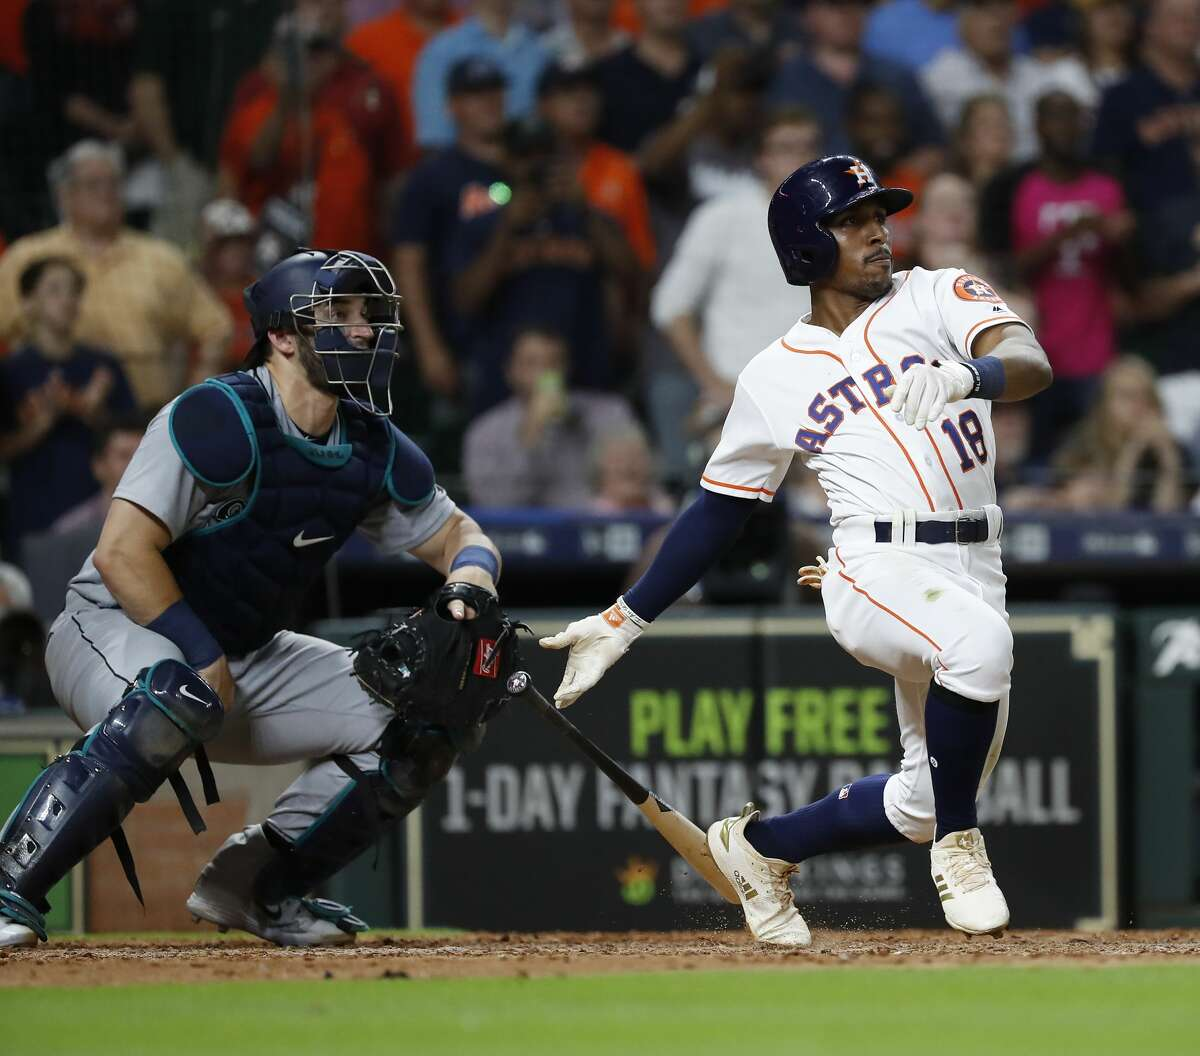 Houston Astros Tony Kemp (18) hits an RBI single during the sixth inning of an MLB game at Minute Maid Park, Thursday, August 9, 2018, in Houston.